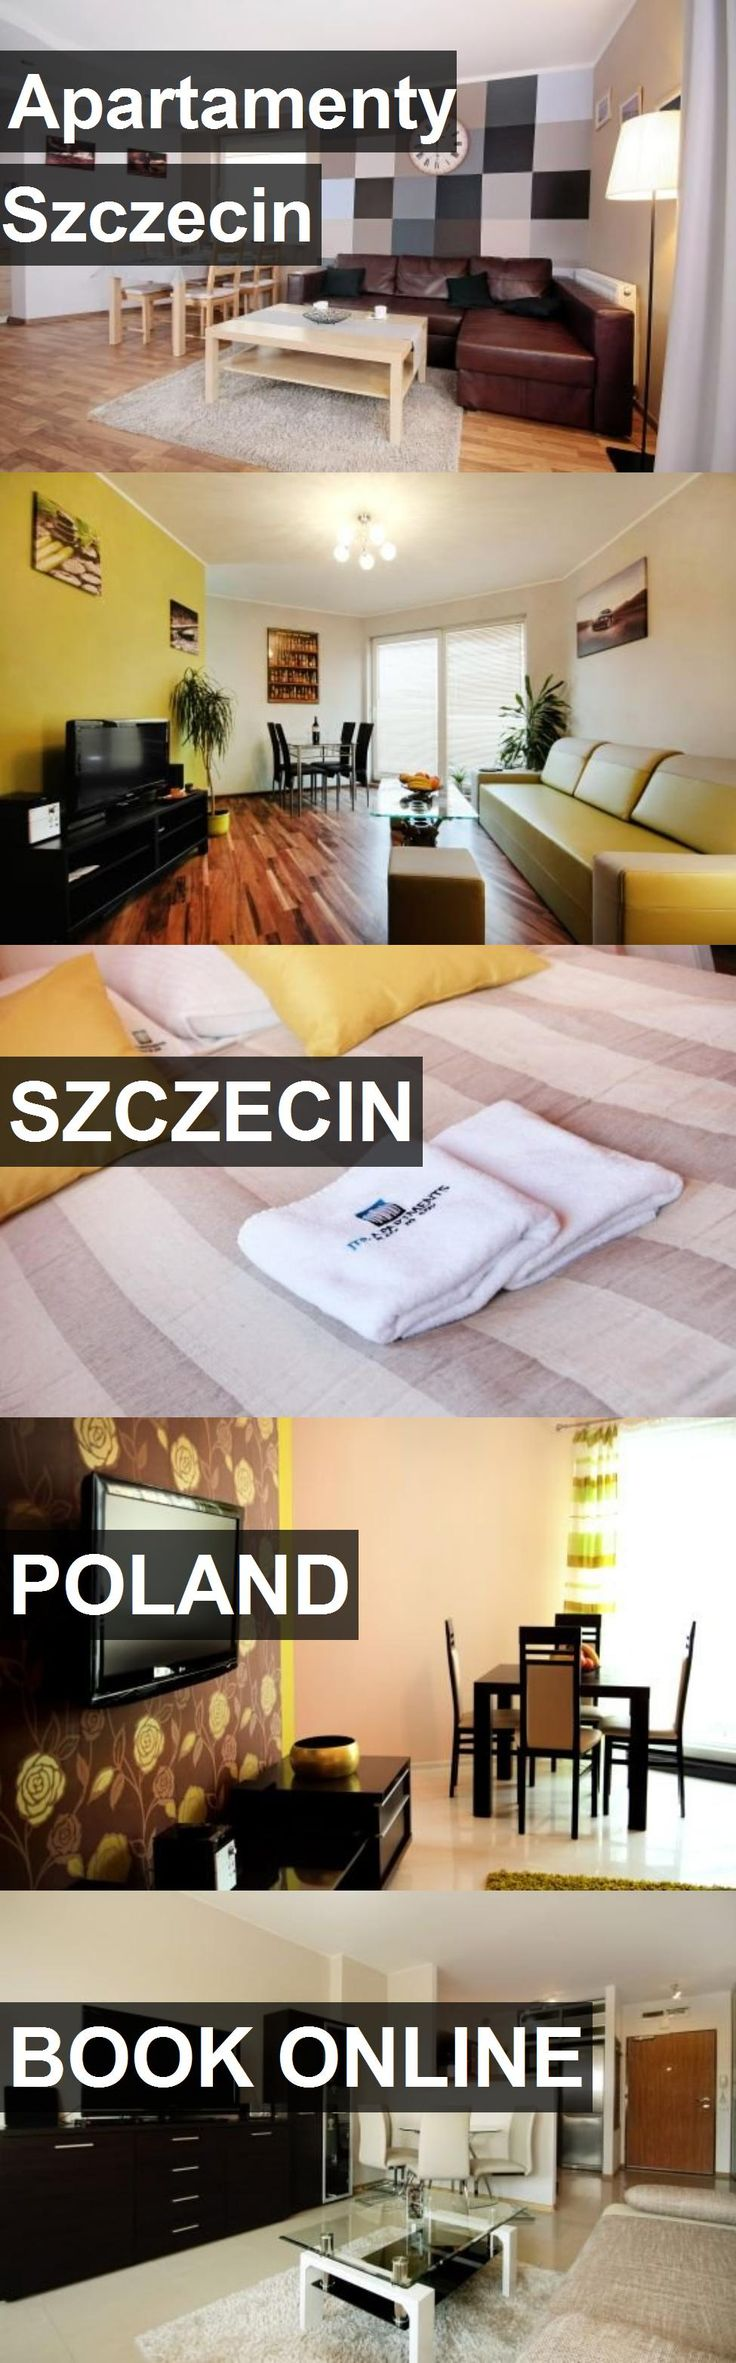 Hotel Apartamenty Szczecin in Szczecin, Poland. For more information, photos, reviews and best prices please follow the link. #Poland #Szczecin #hotel #travel #vacation